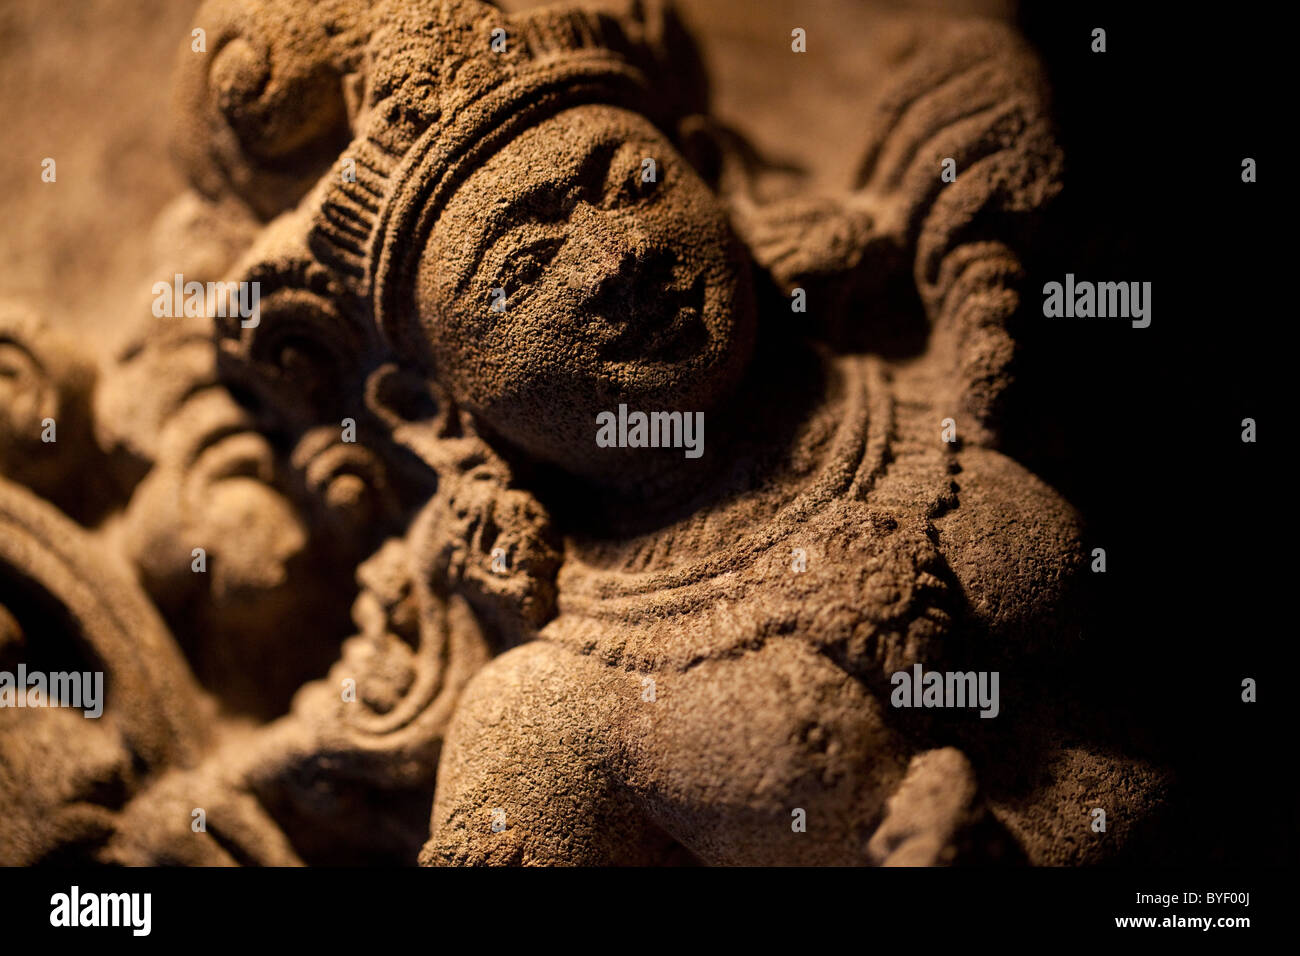 Detail of a busty Indian dancer or deity on a relief sculpture - Stock Image